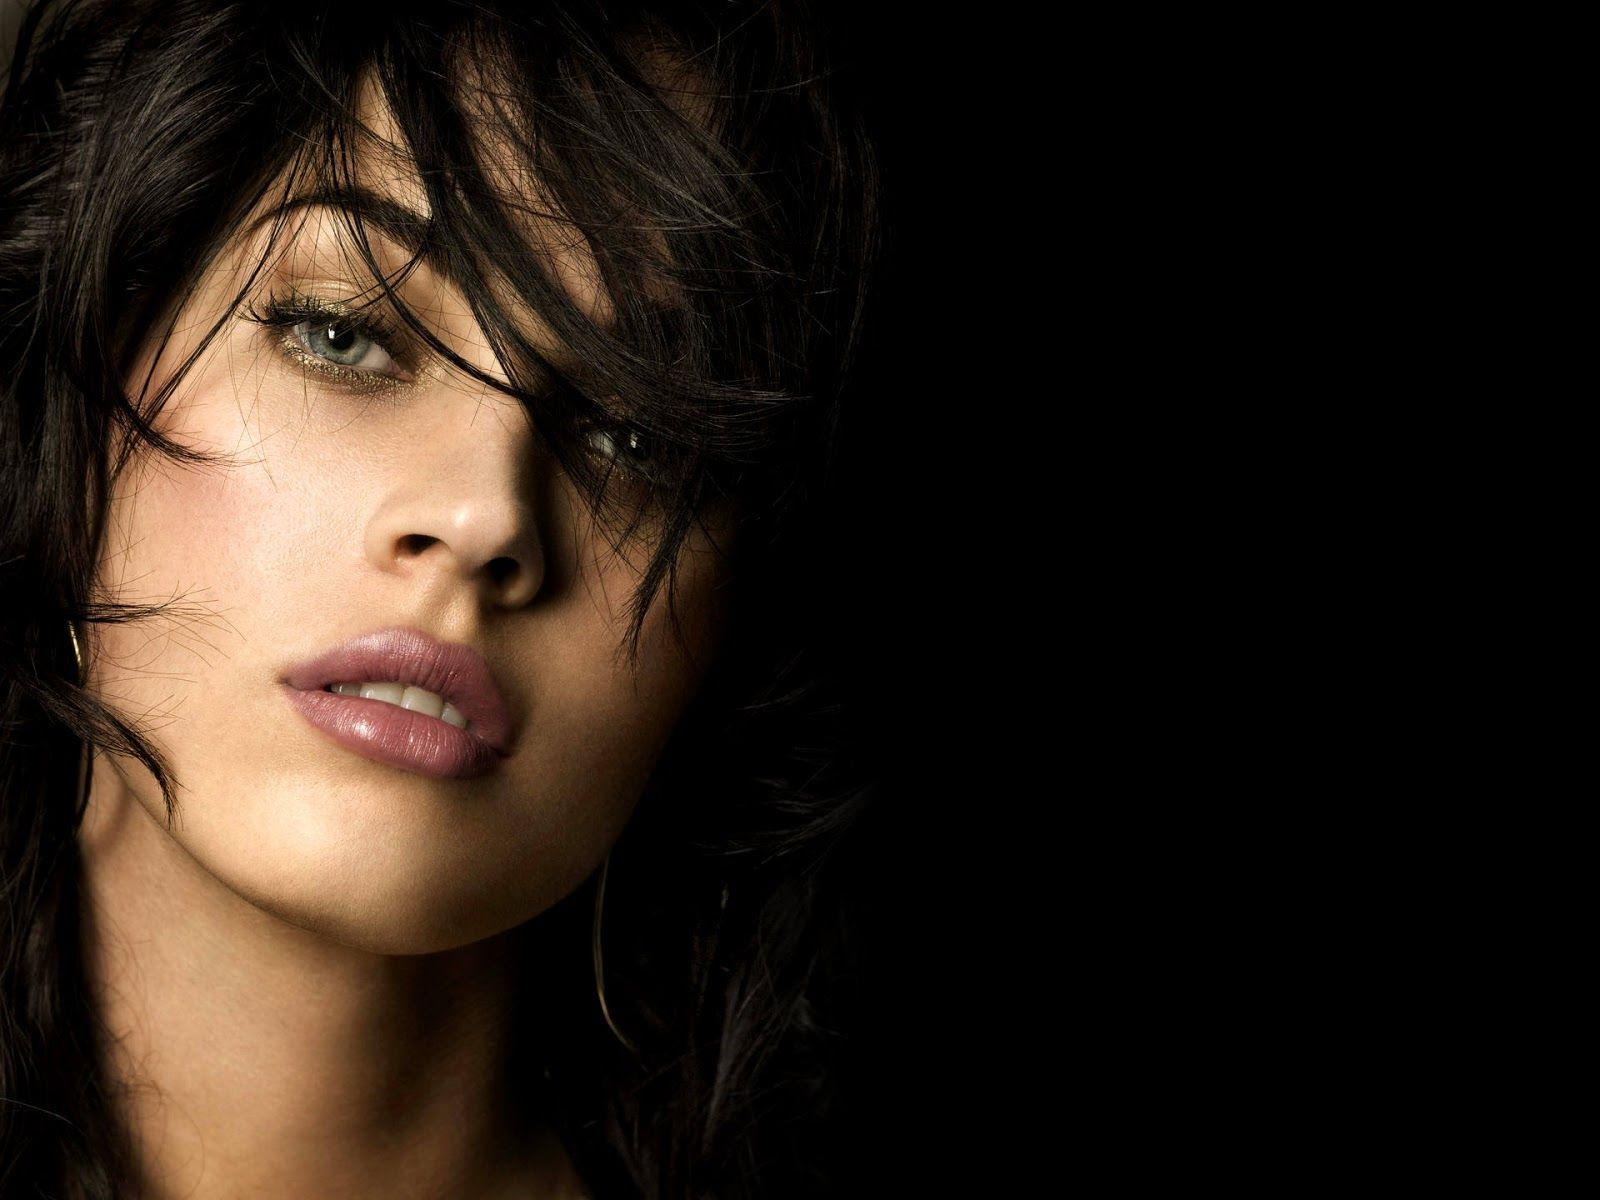 download Wallpapers Collection Beautiful Women Wallpapers 1600x1200